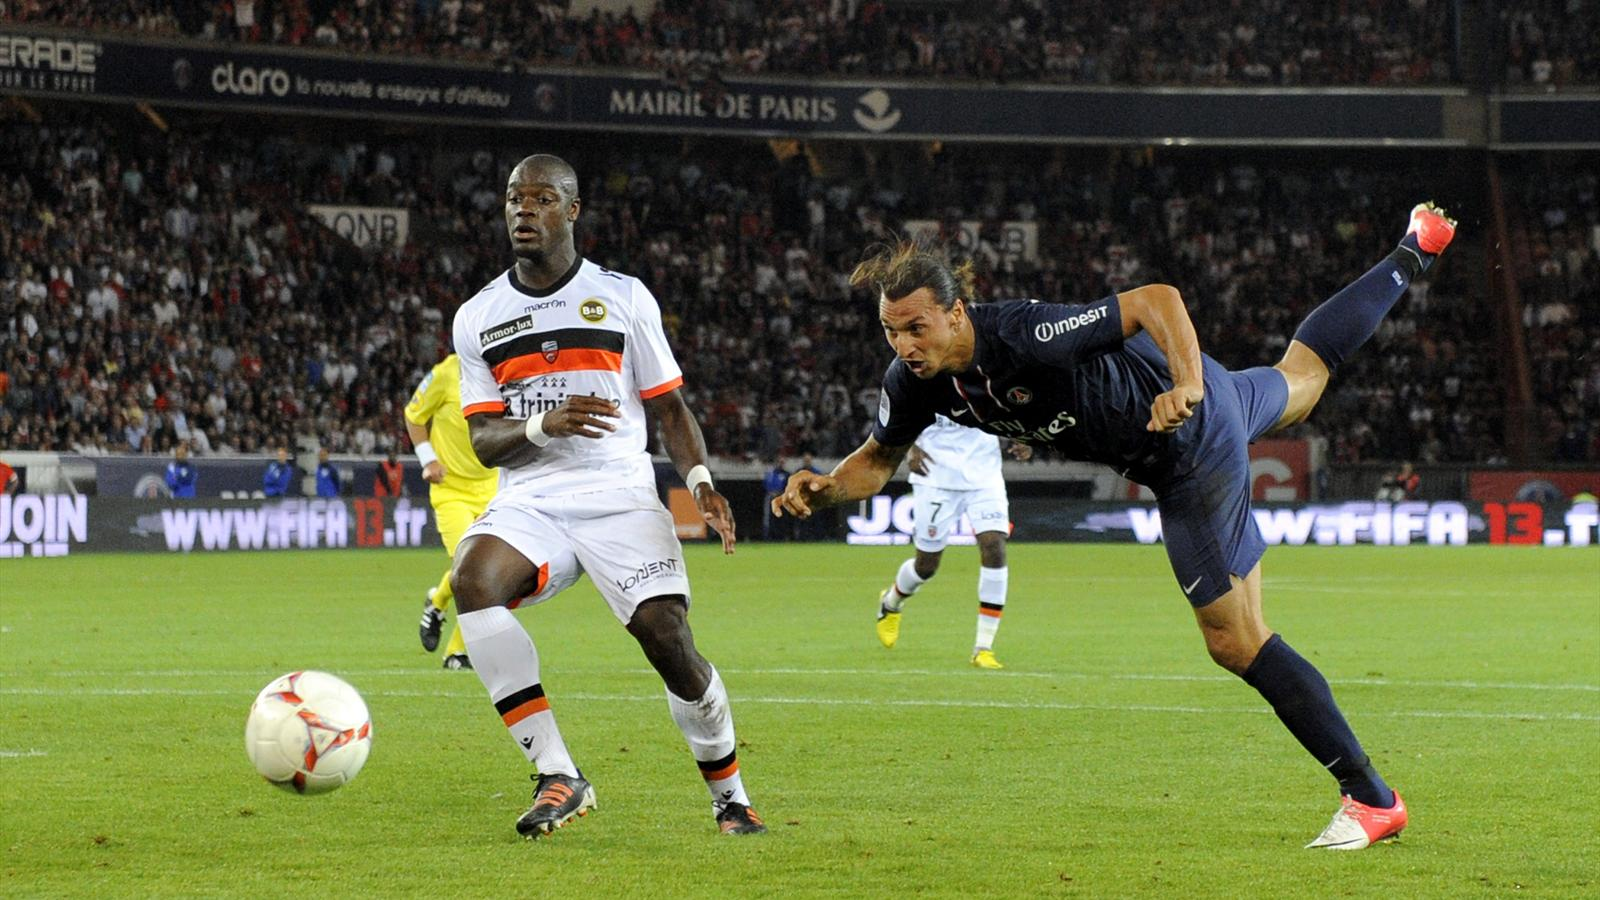 Match FC Lorient vs Paris Saint-Germain en direct live streaming